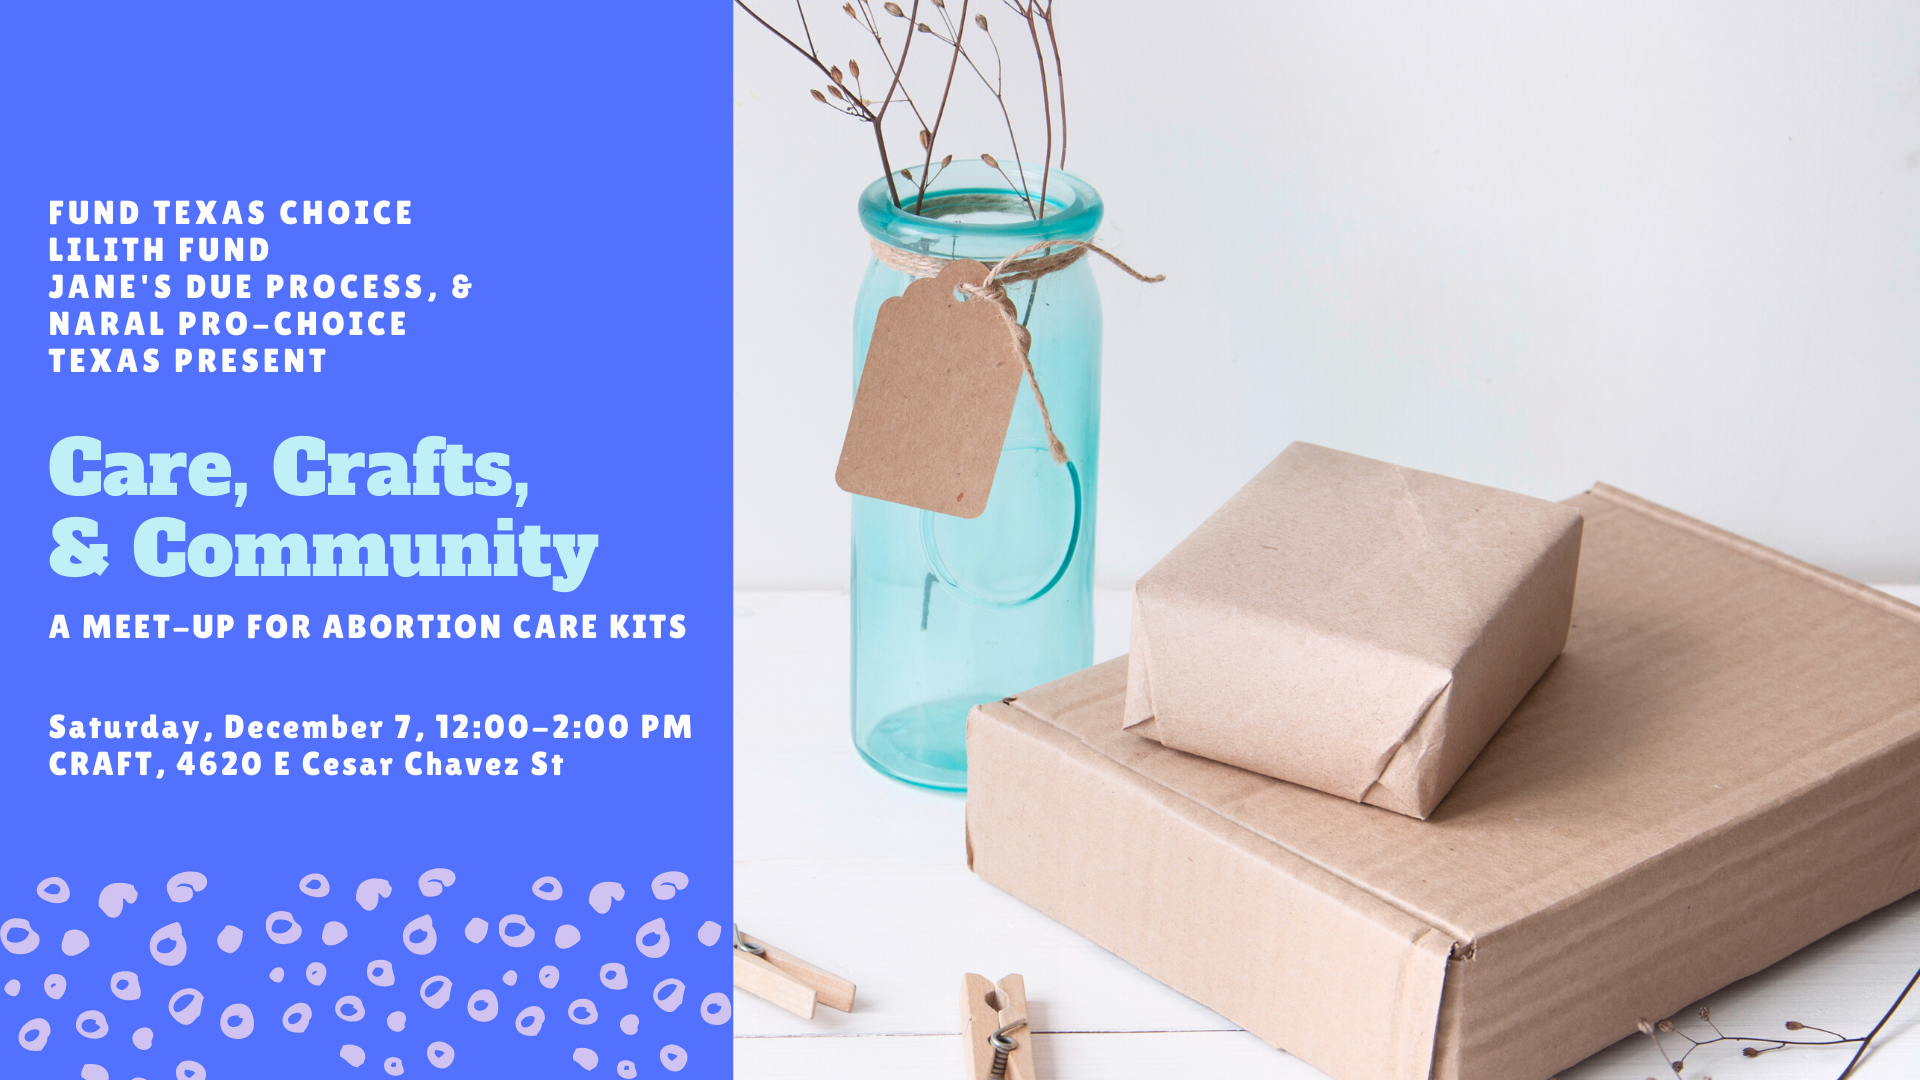 Fund Texas Choice Lilith Fund JANE'S DUE PROCESS, & Naral Pro-Choice Texas Present Care, Crafts, & Community. A Meet-Up for Abortion Care Kits   Saturday, December 7, 12:00-2:00 PM CRAFT, 4620 E Cesar Chavez St